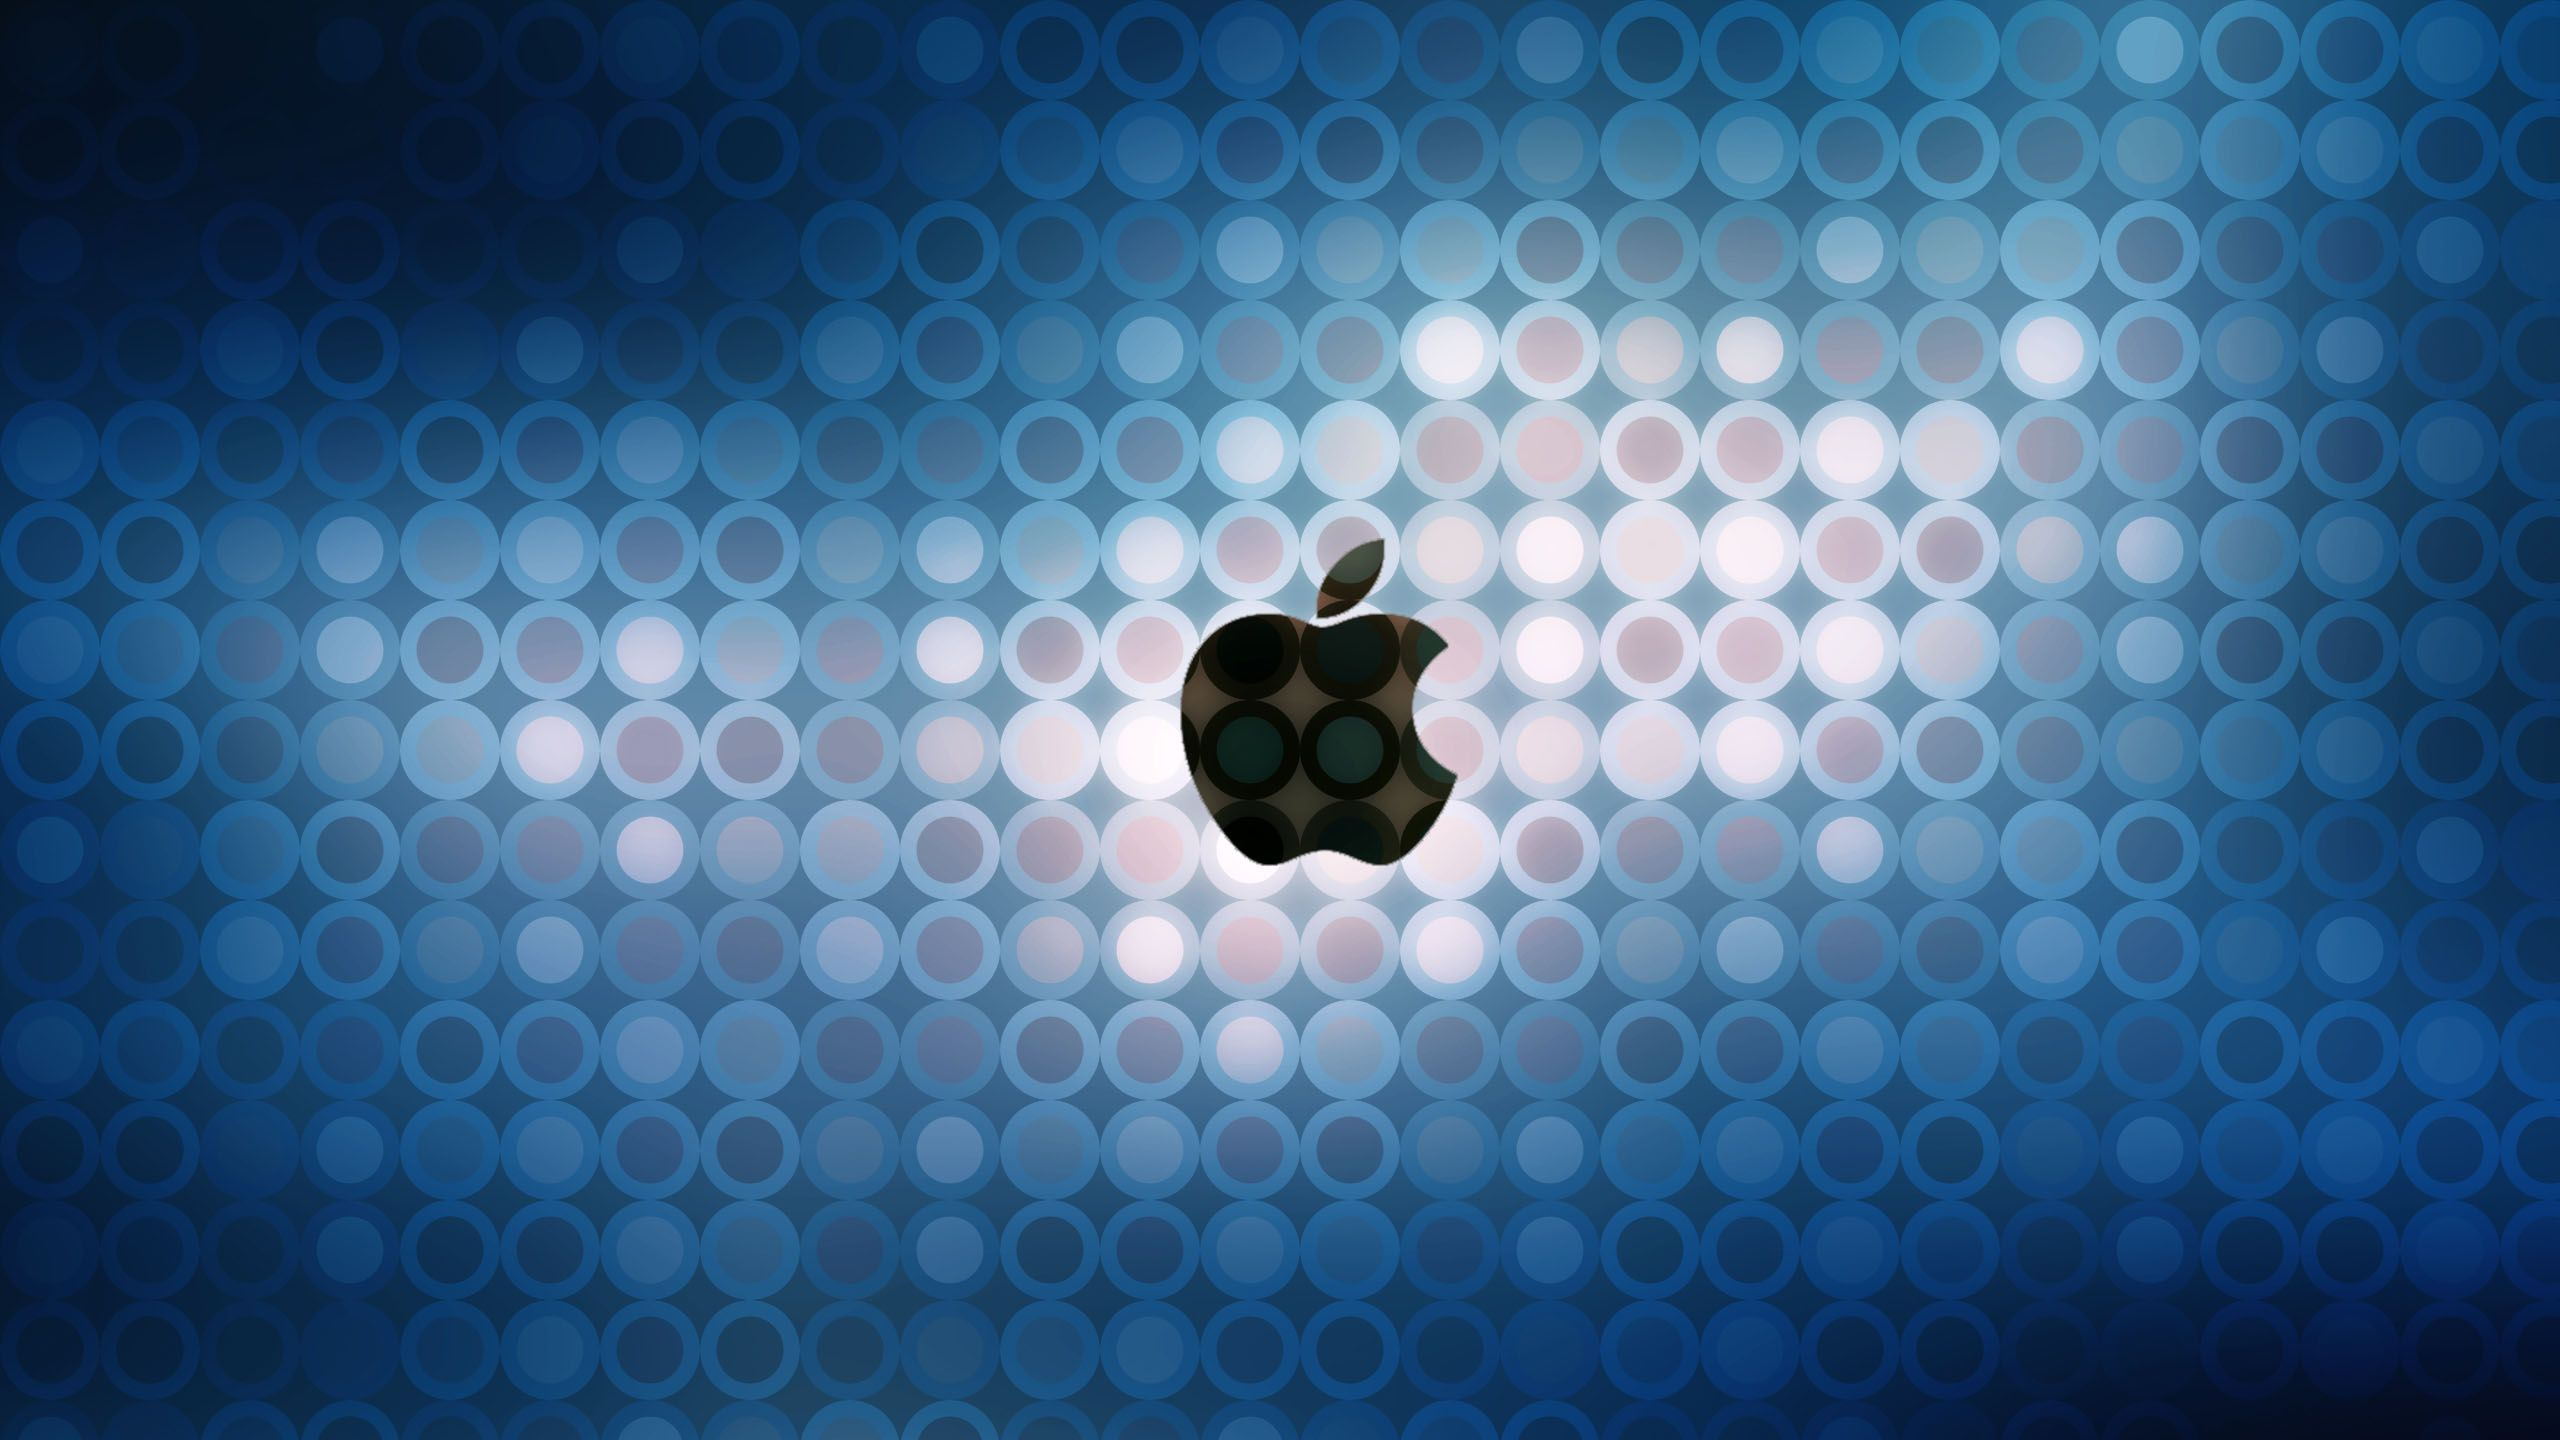 hd mac apple os wallpaper high resolution full size